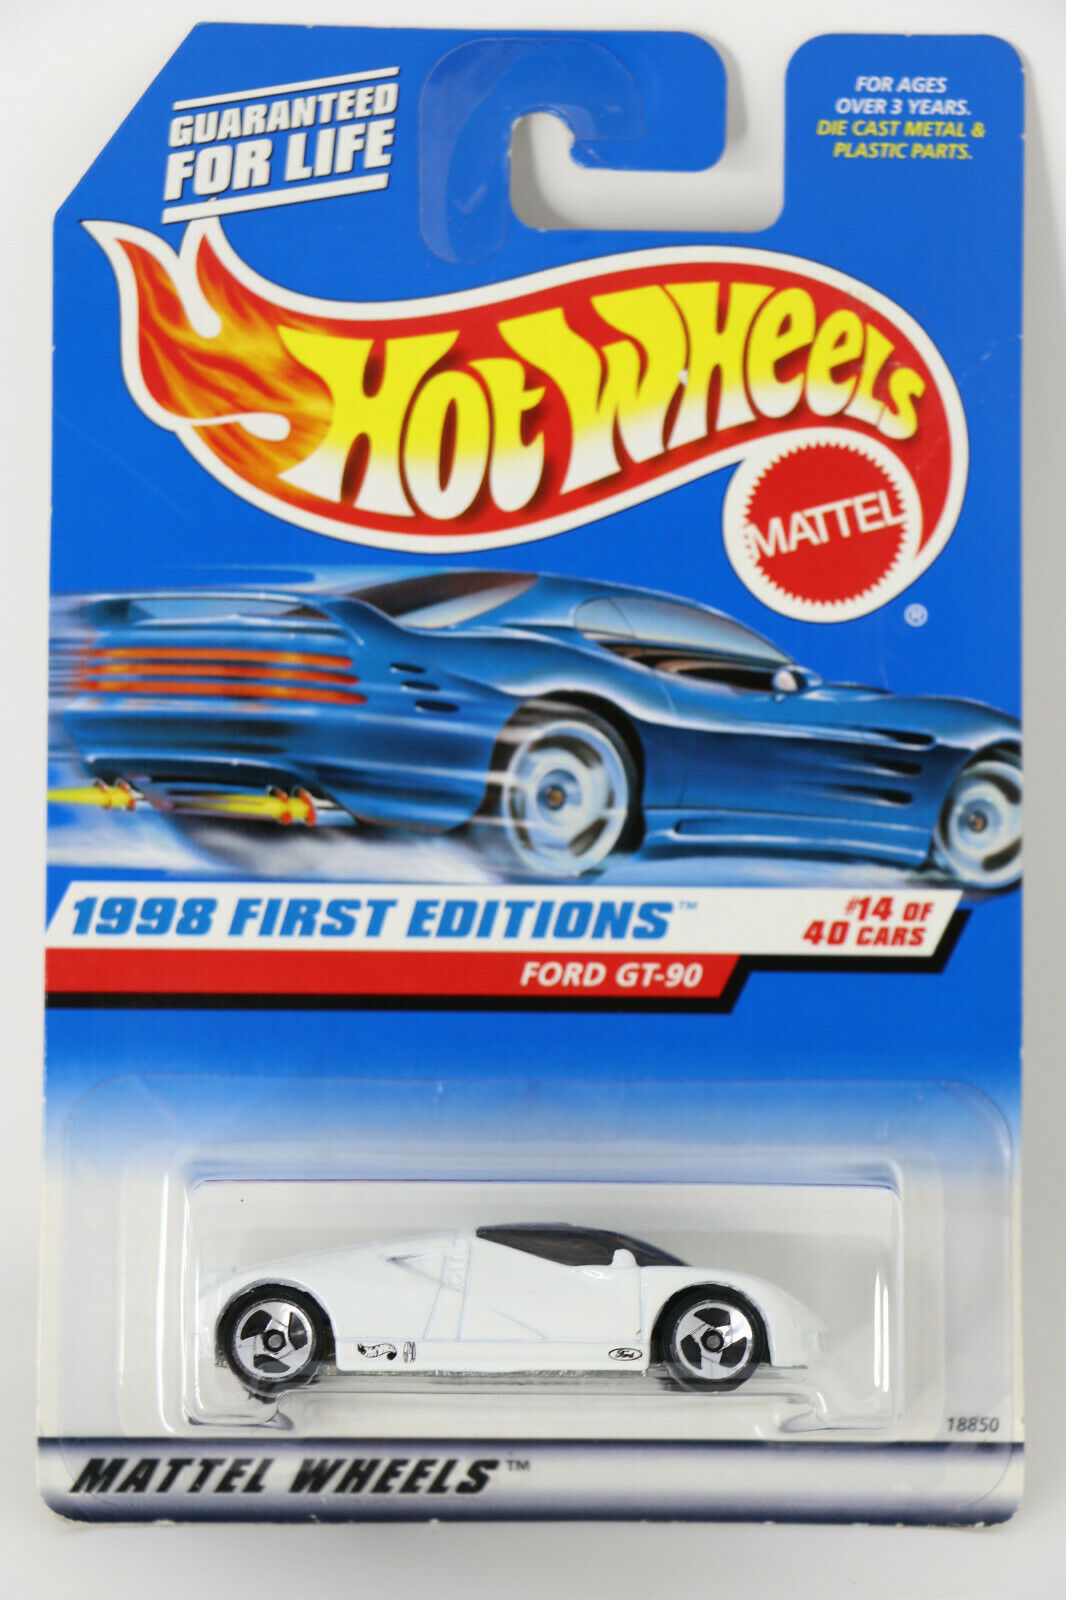 Ford GT-90 #668 1998 - Hot Wheels